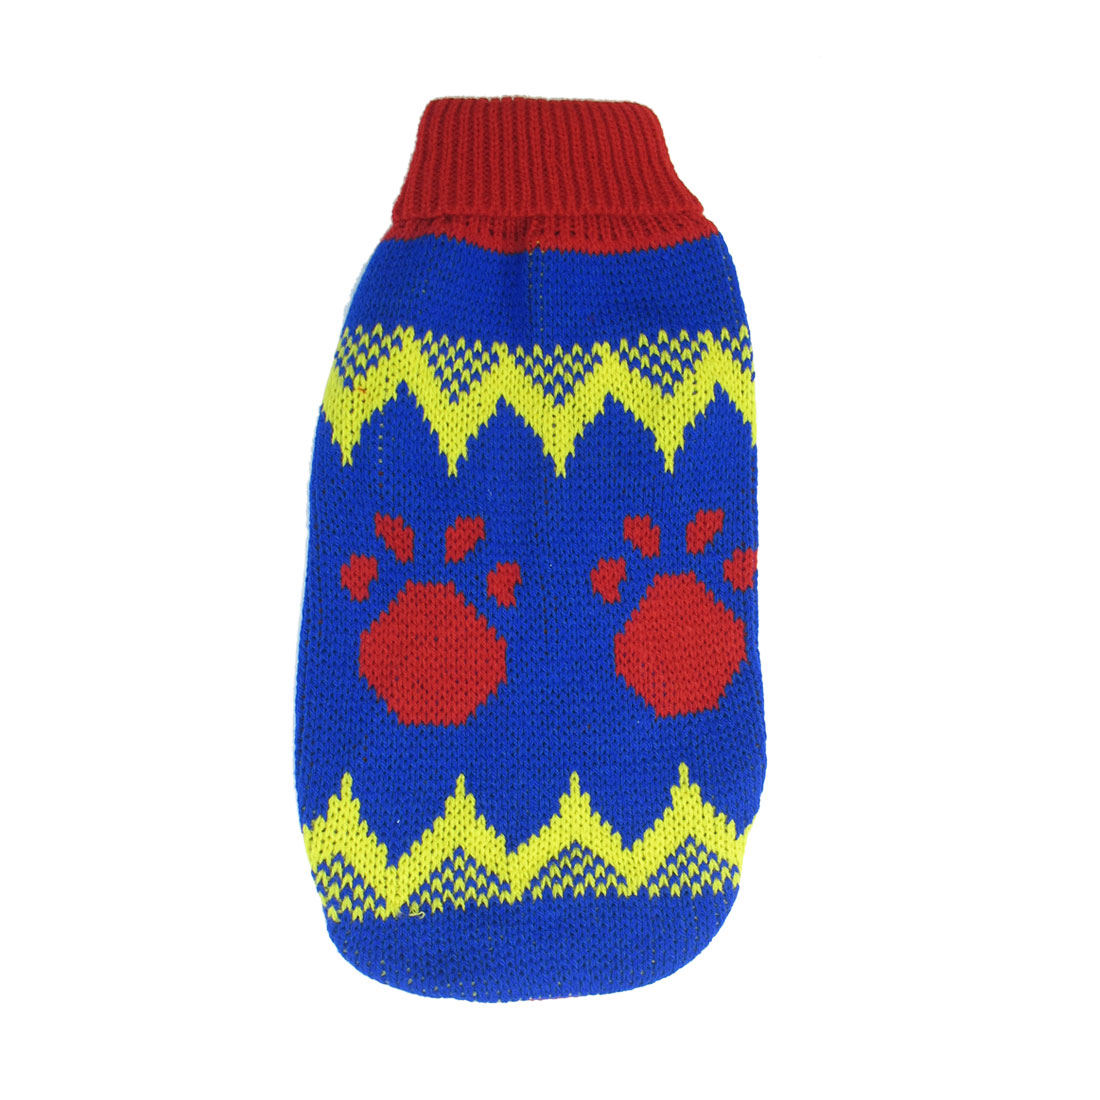 Blue Red Yellow Knitting Pawprint Print Pet Yorkie Sleeves Clothes Sweater Size M